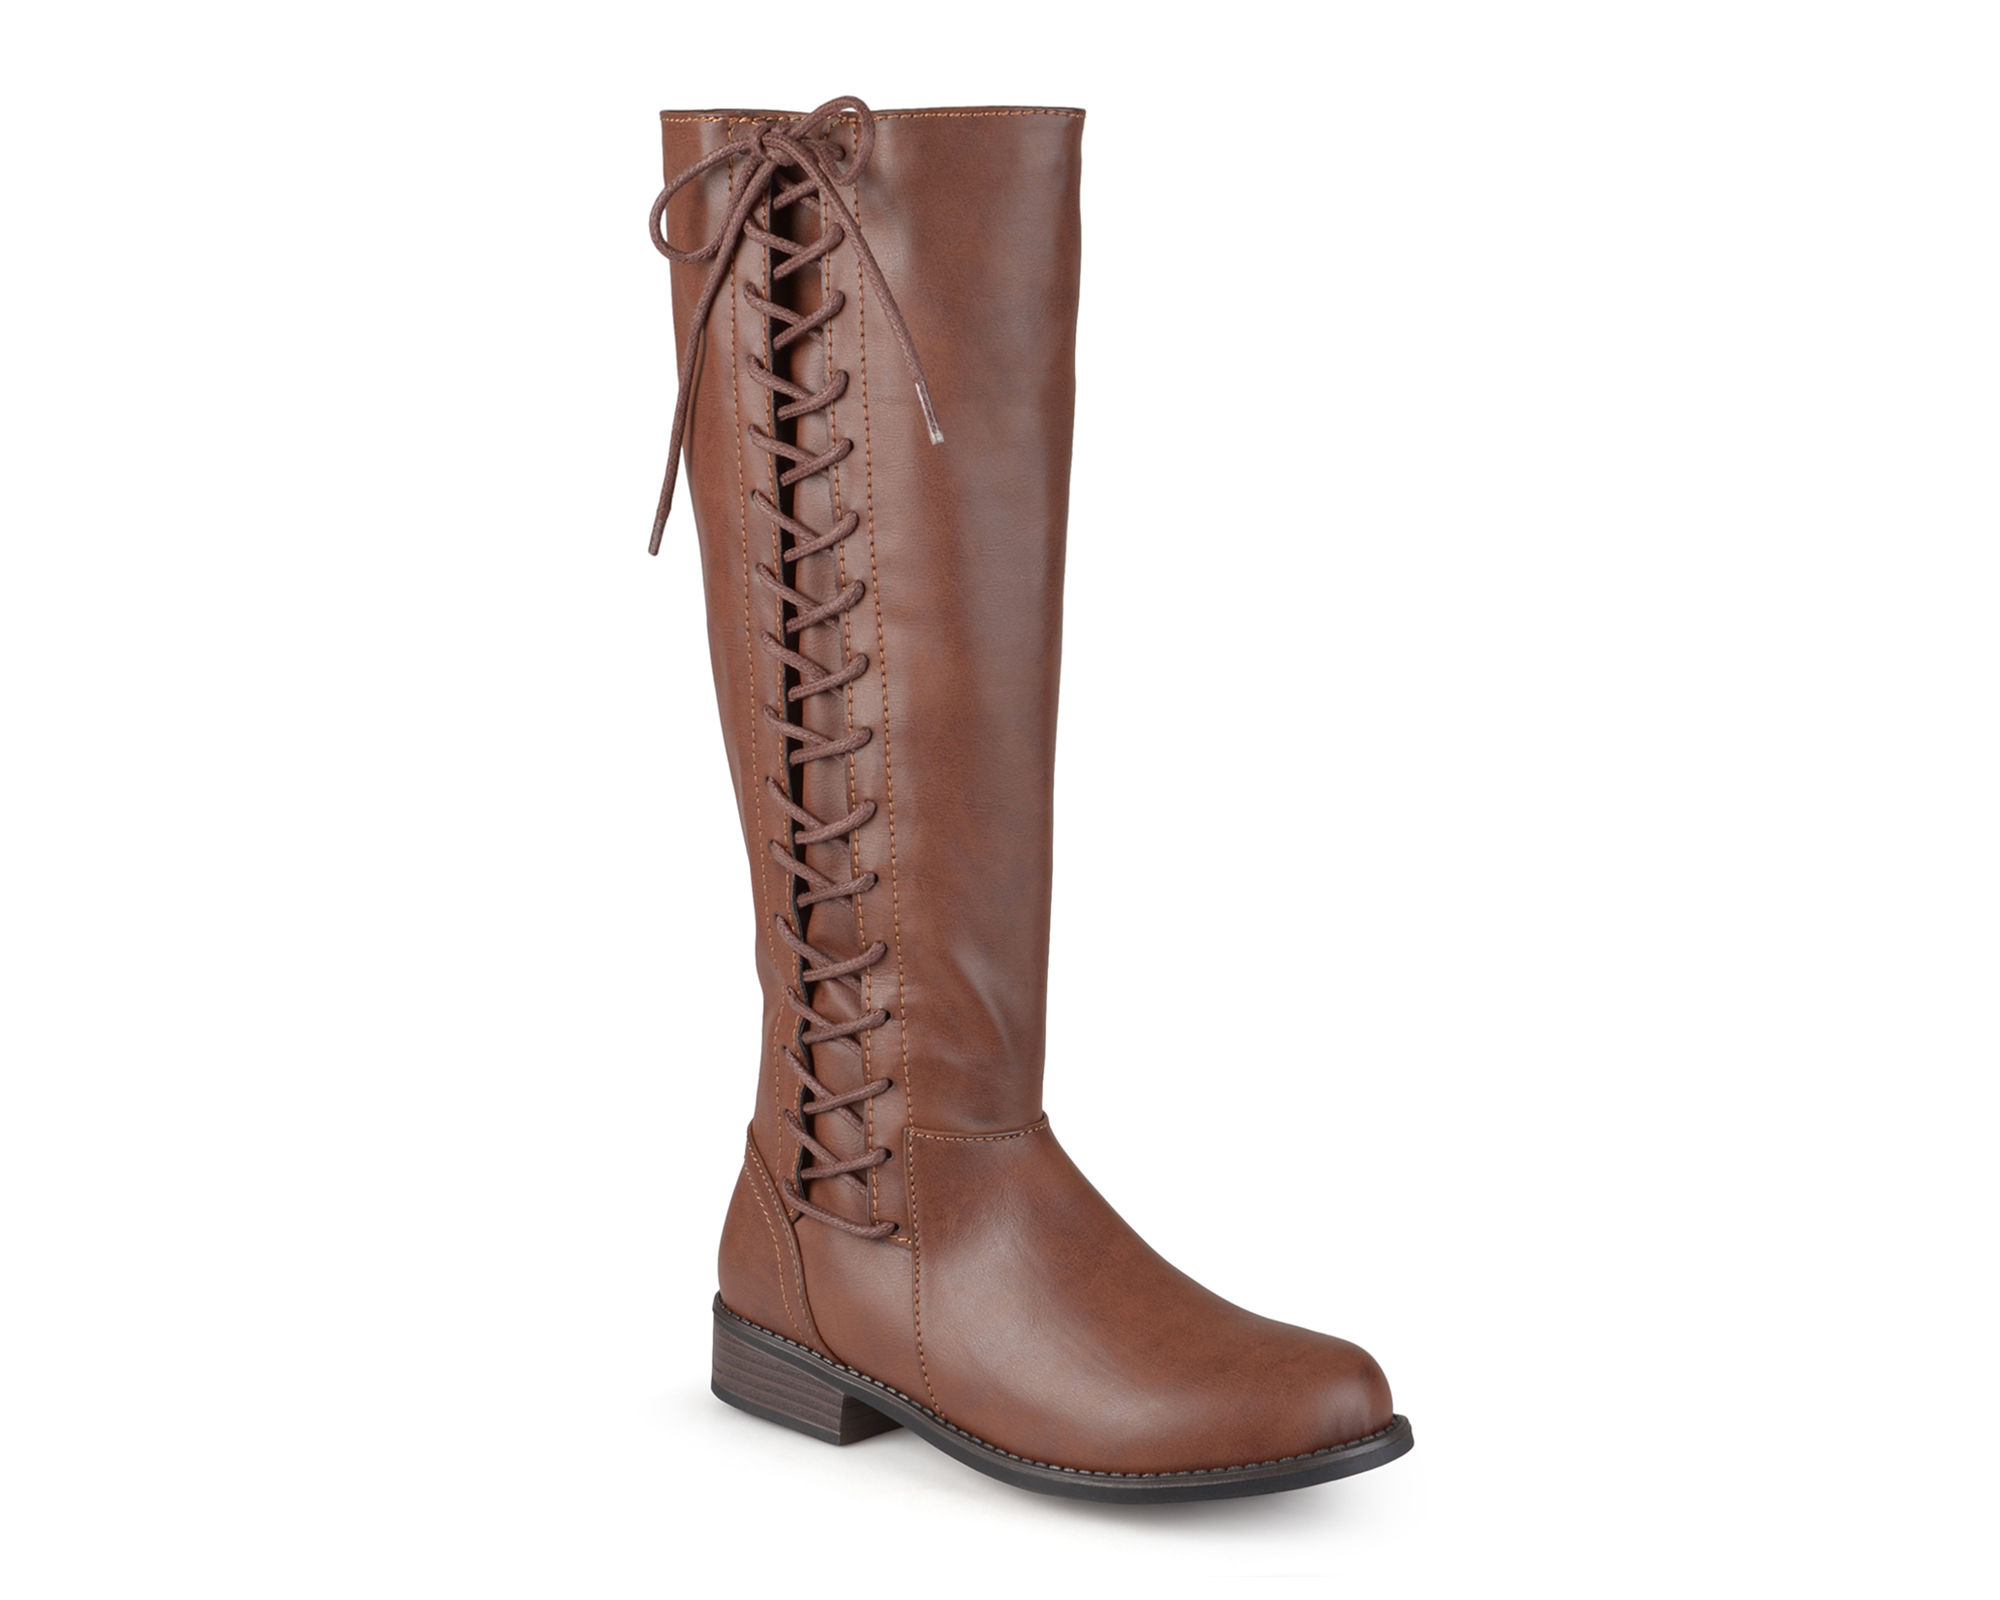 Journee Collection Cinch Wide Calf Womens Riding Boots